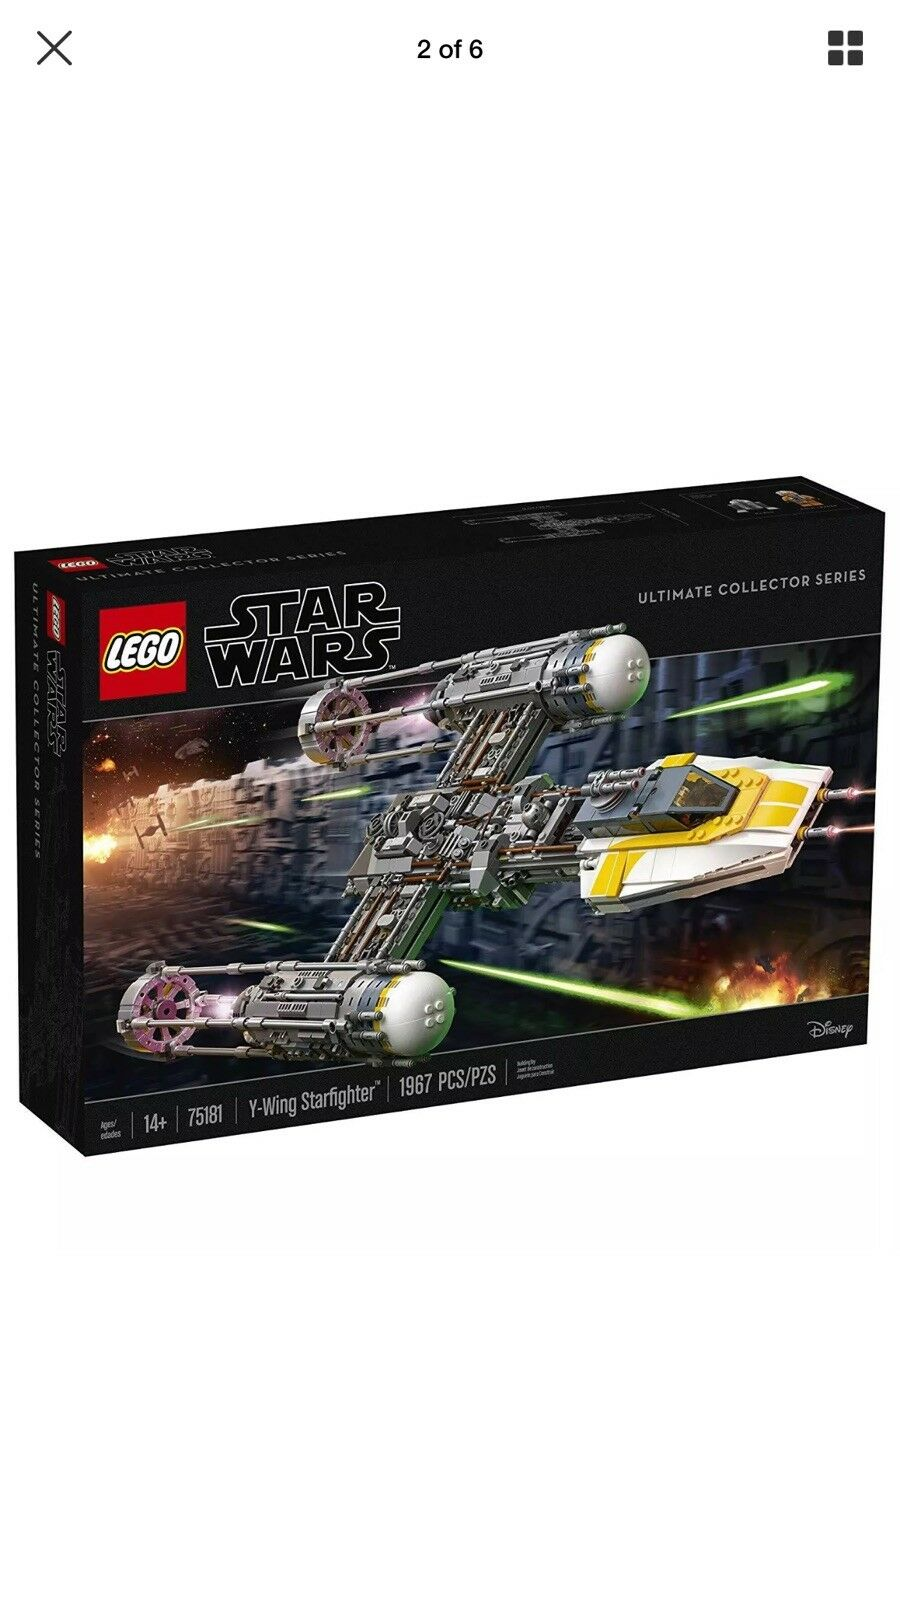 LEGO Star Wars Ultimate Collector Series Y-Wing Starfighter 75181 [Toy 1967 Pcs]